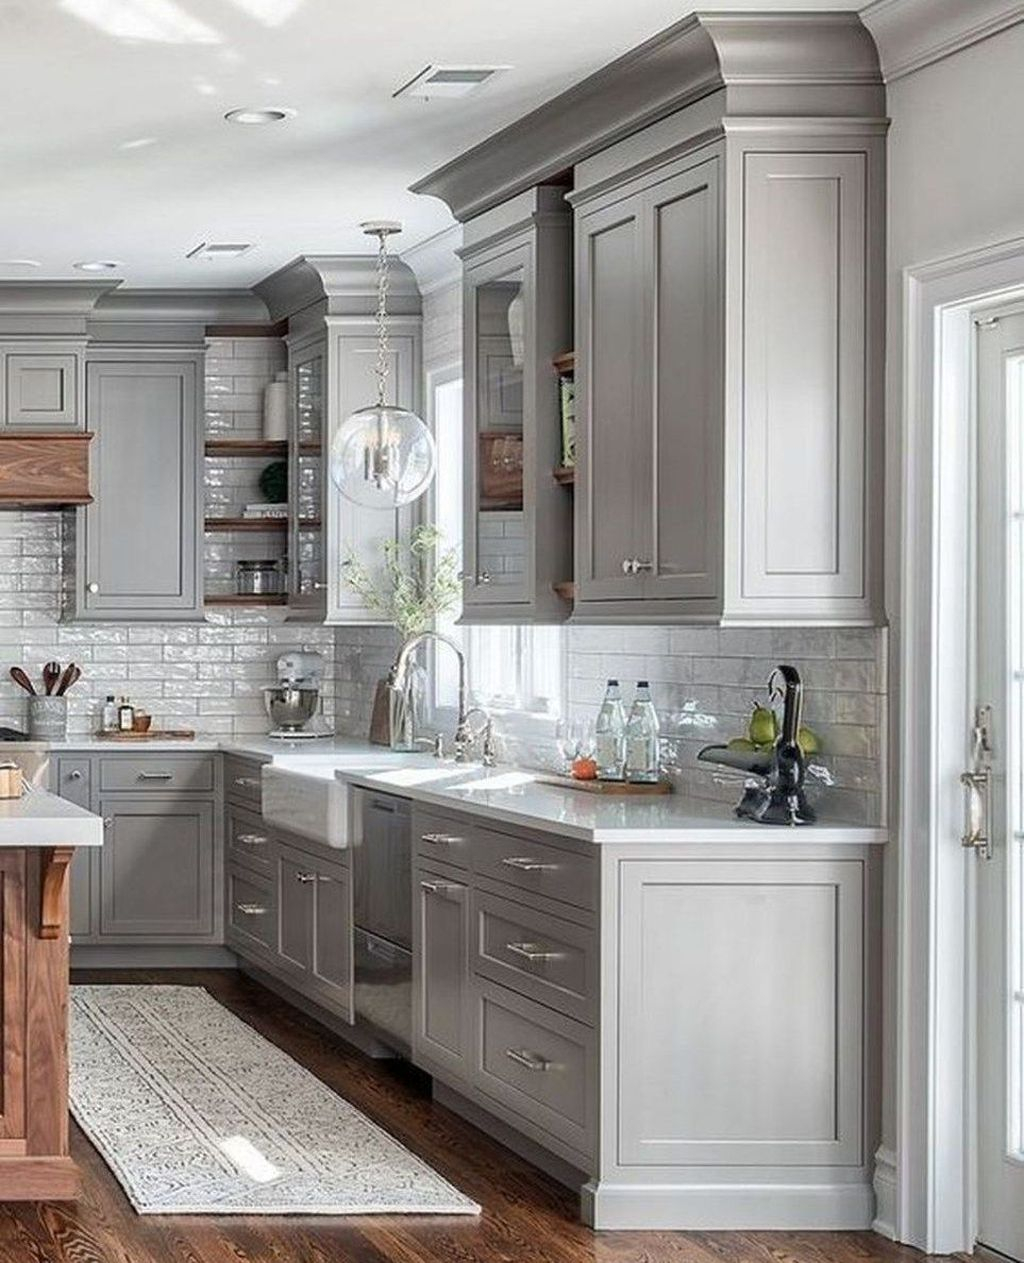 Adorable Kitchen Cabinet Ideas That Looks Neat To Try 26